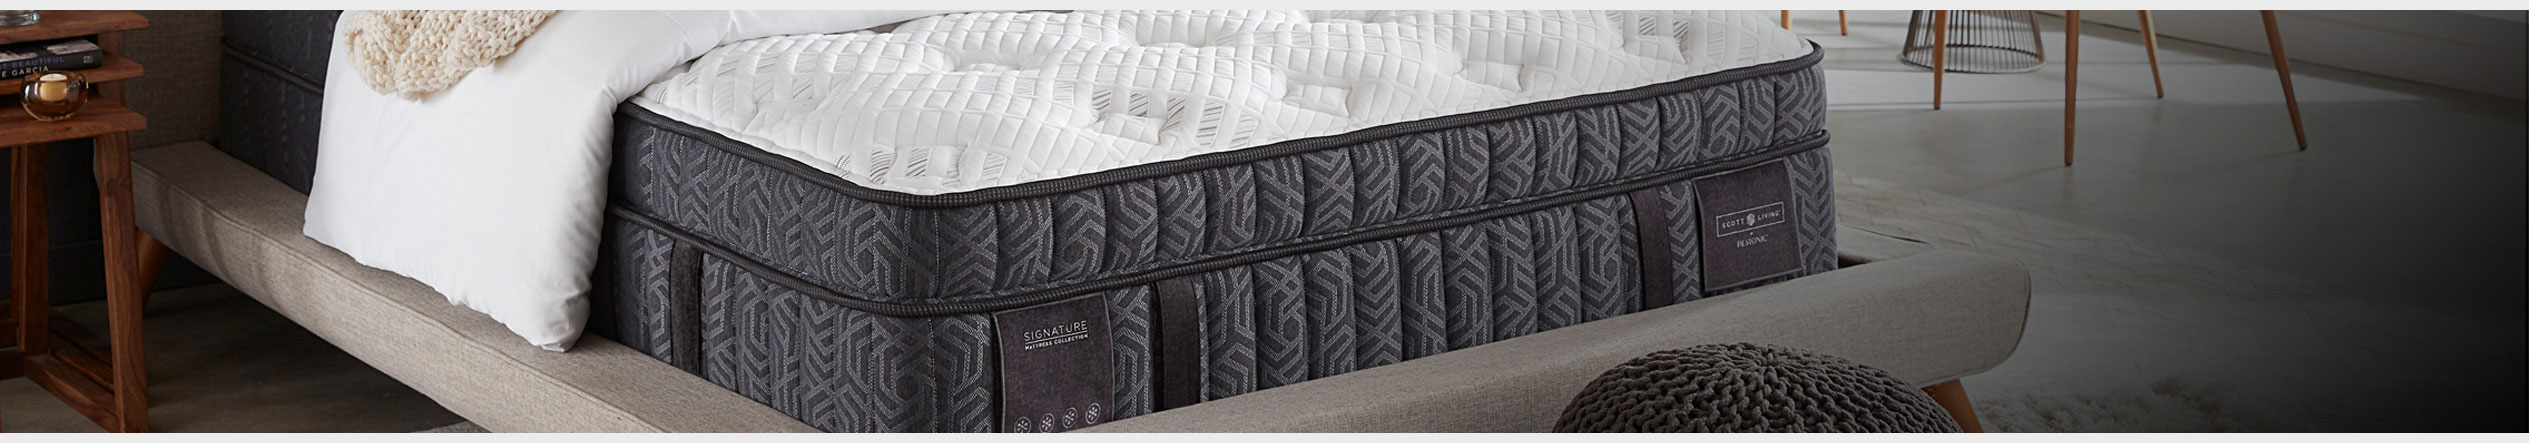 Scott Living by Restonic Mattresses for sale at Jordan's Furniture stores in MA, NH, CT, ME and RI